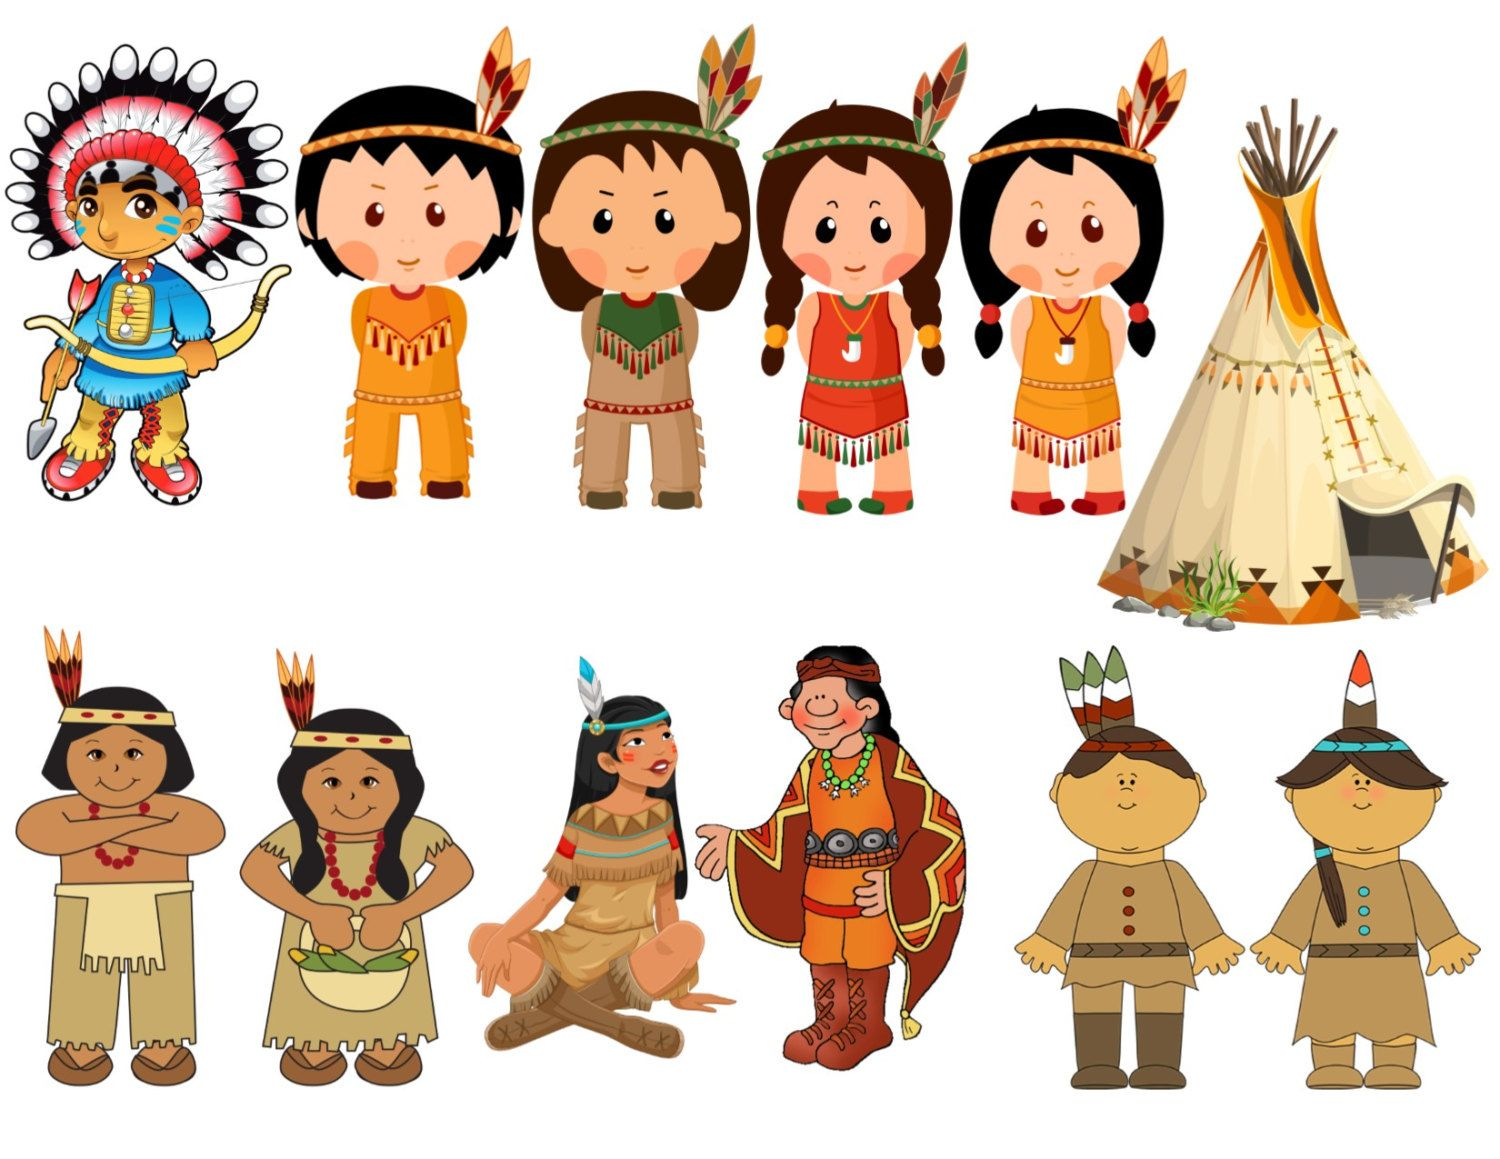 Native American, Indian, American Indian Image, Tepee Cutout.